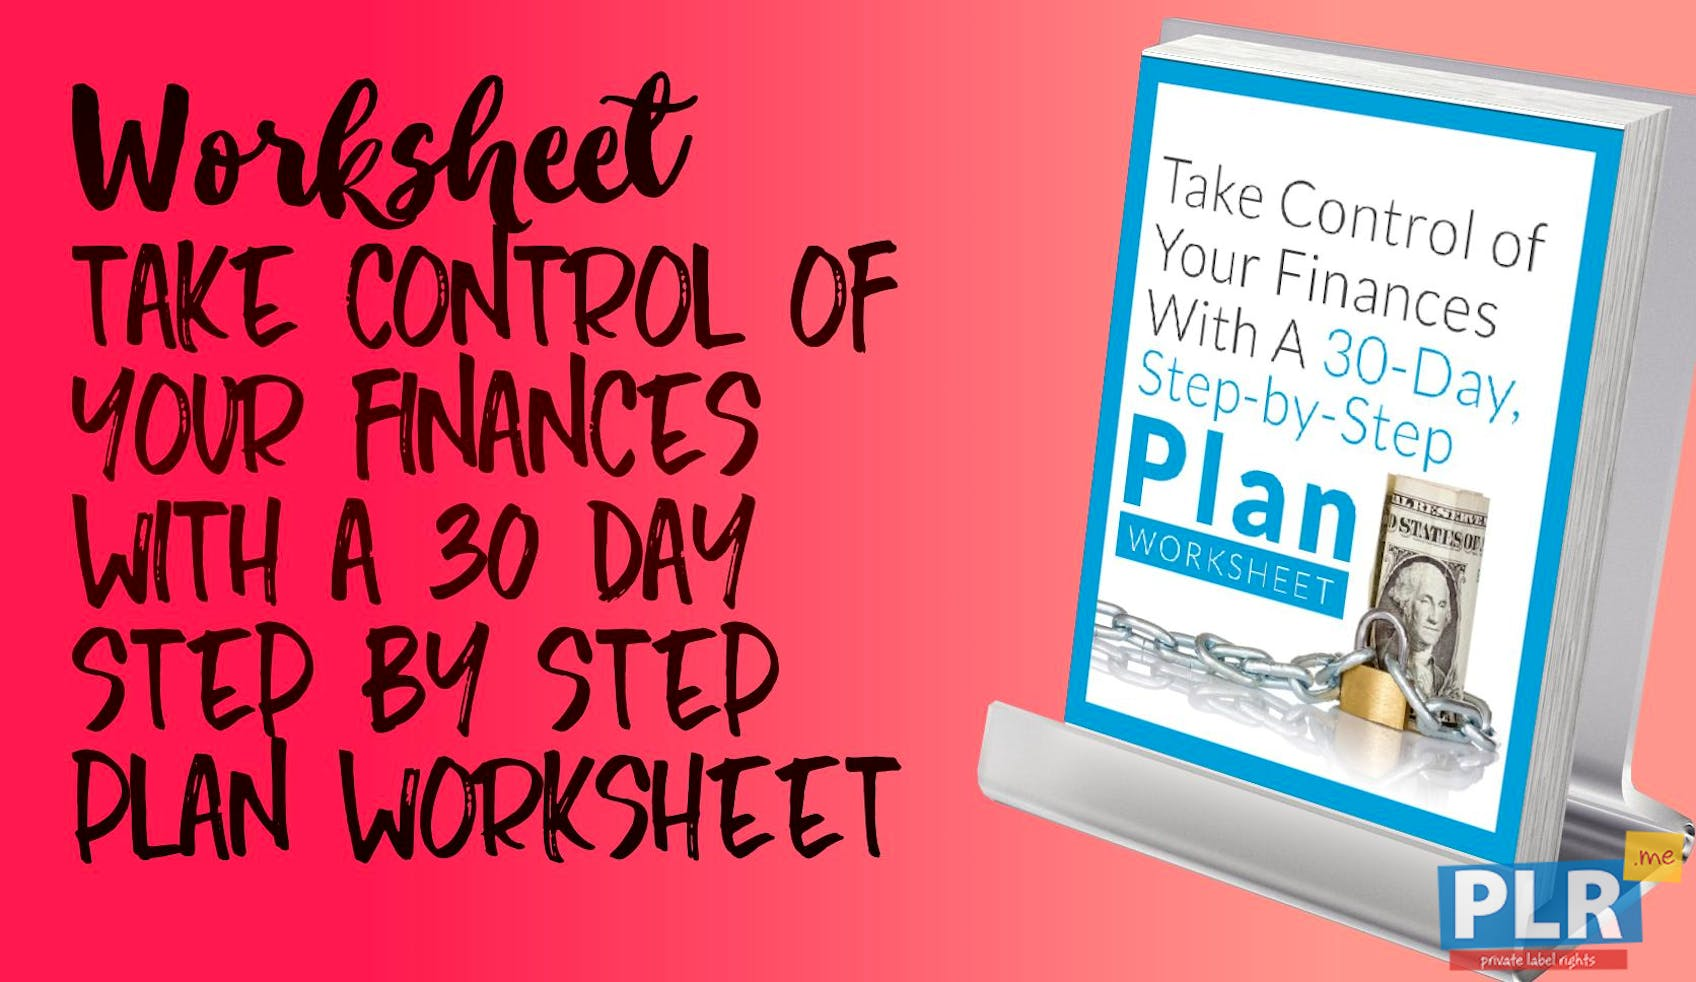 Take Control Of Your Finances With A 30 Day Step By Step Plan Worksheet